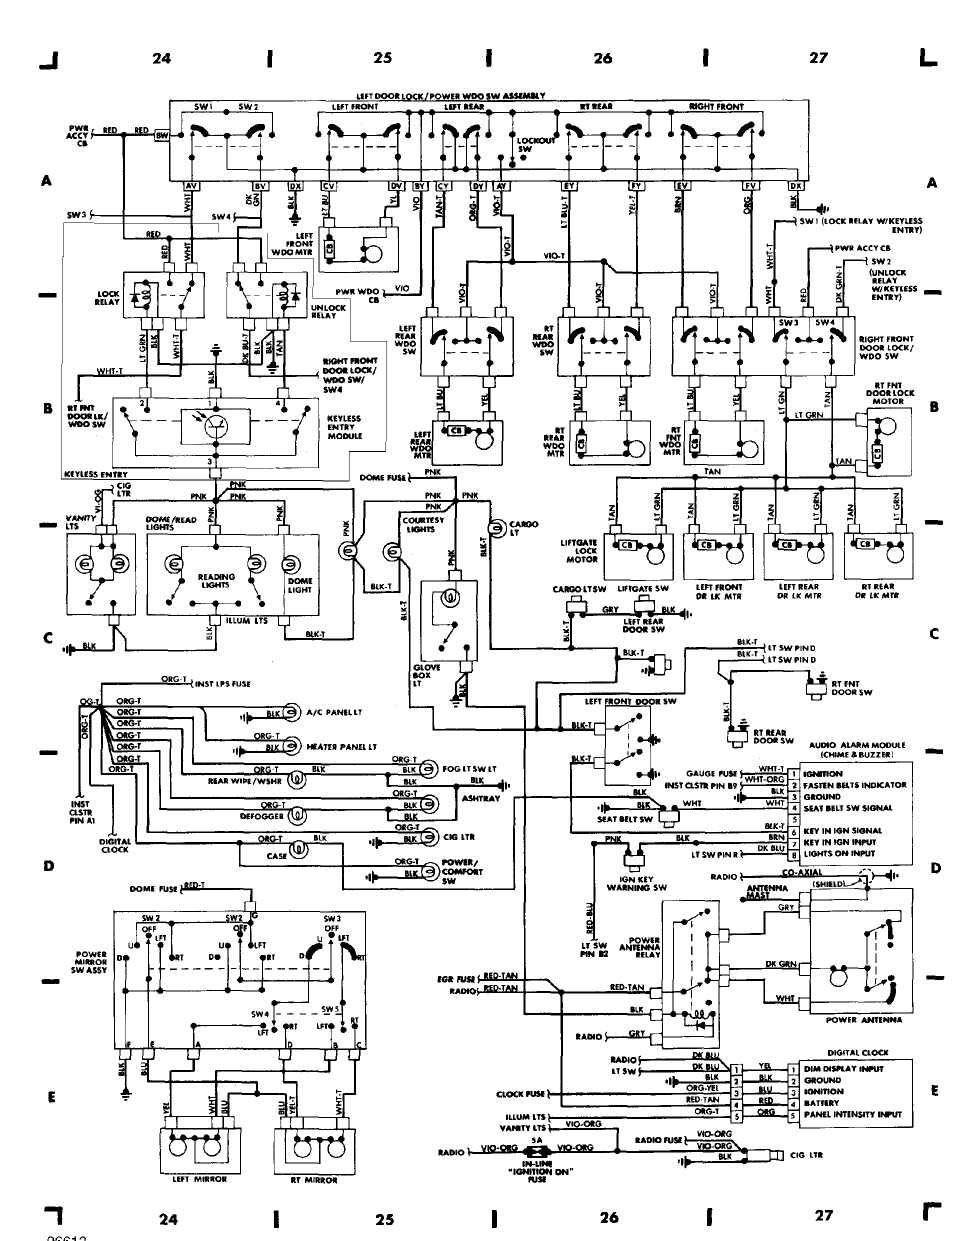 wiring_diagrams_html_61f5e0ad wiring diagrams 1984 1991 jeep cherokee (xj) jeep 1992 jeep cherokee wiring diagram at gsmportal.co